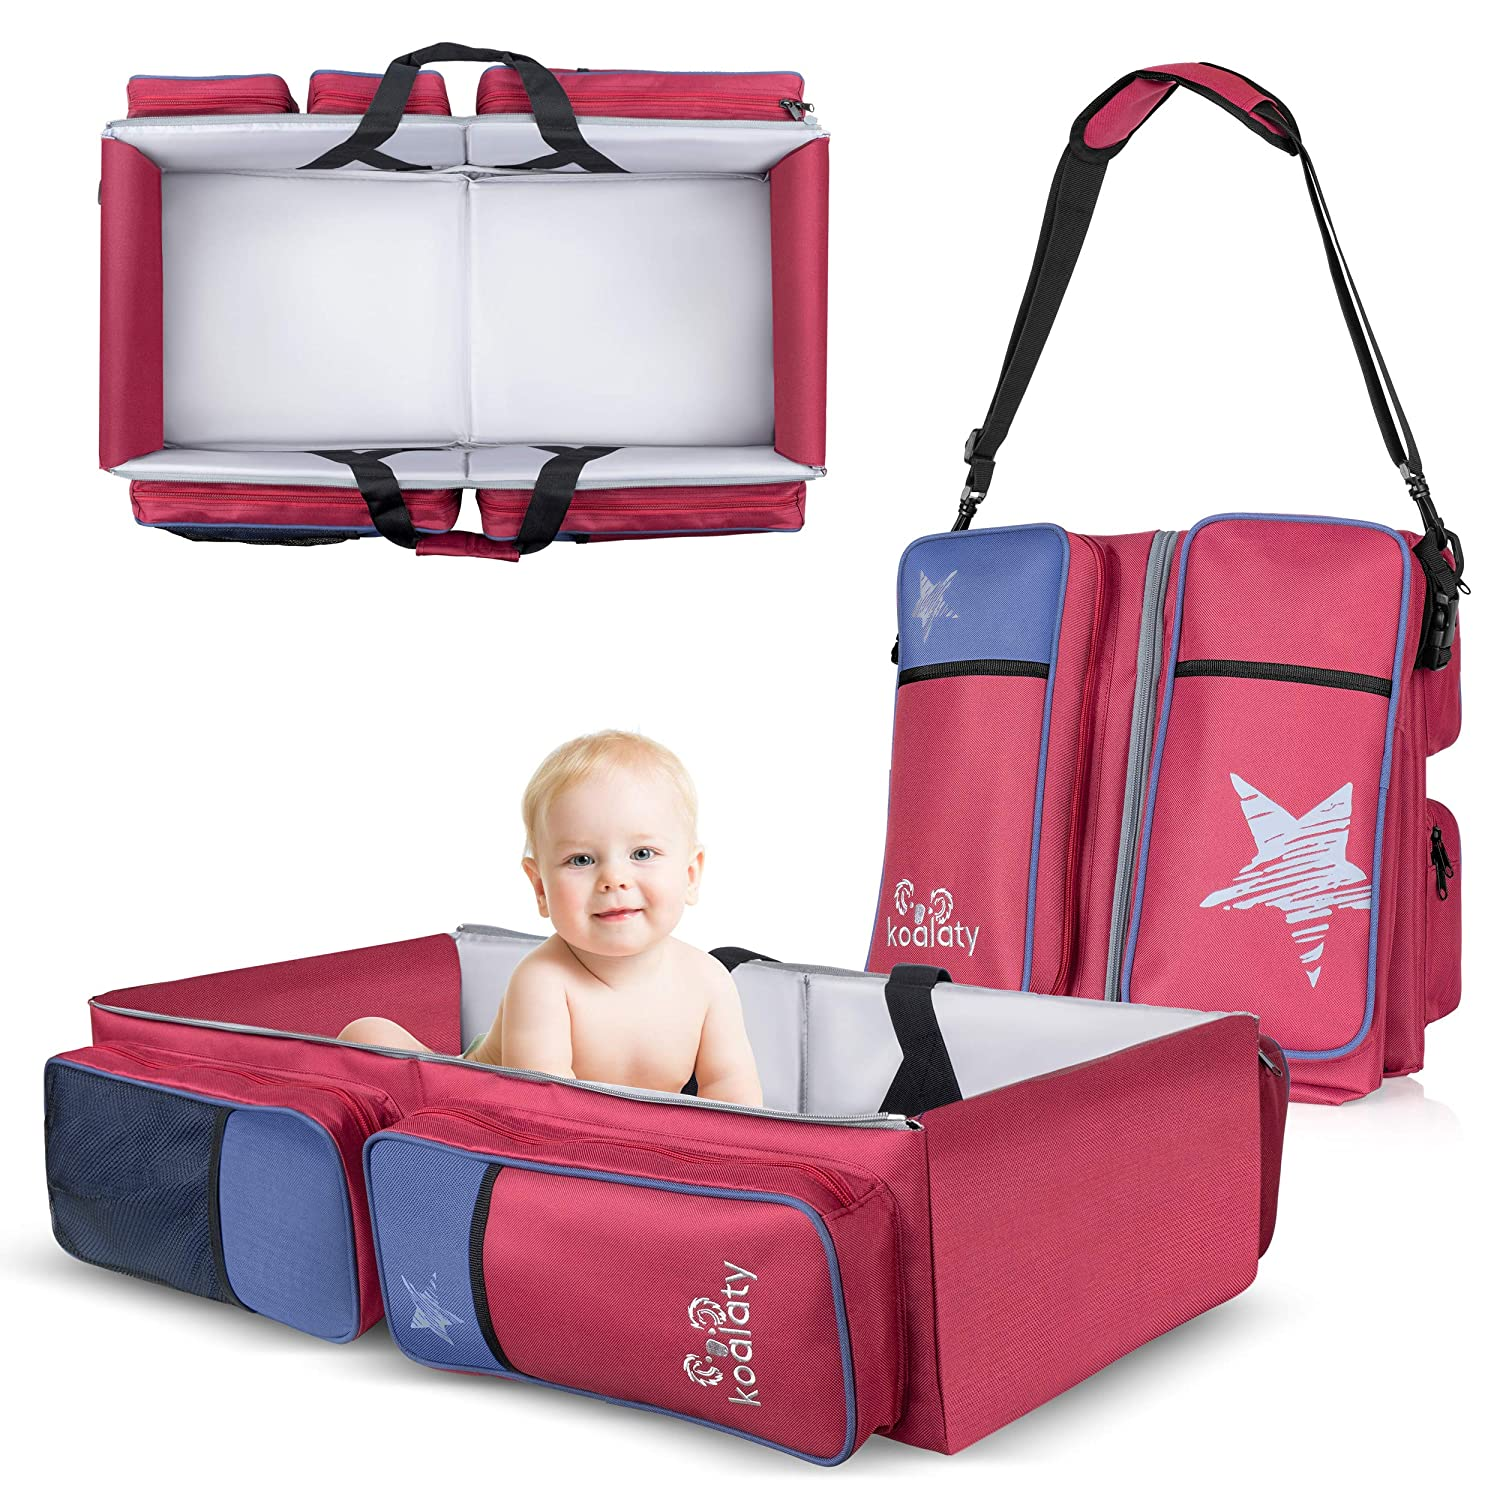 Aussie Collection Weekender Bag Baby changing Day Trip New Baby Beach Bag Holiday bag Koala and Kangaroo